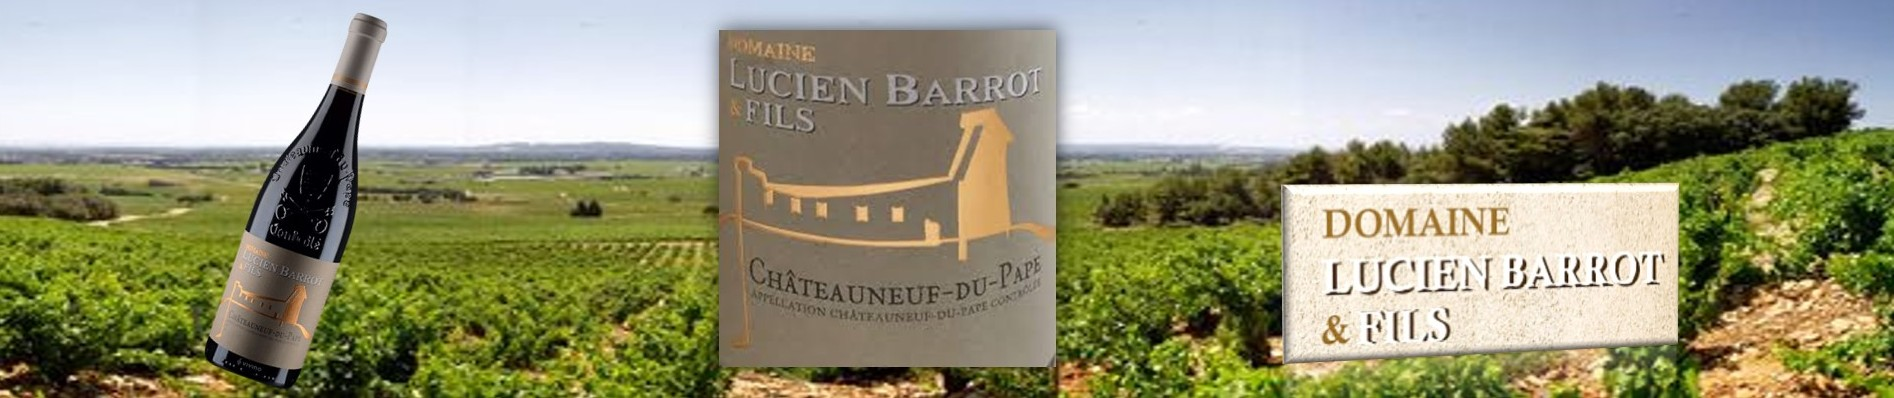 Lucien-Barrot-Chateauneuf